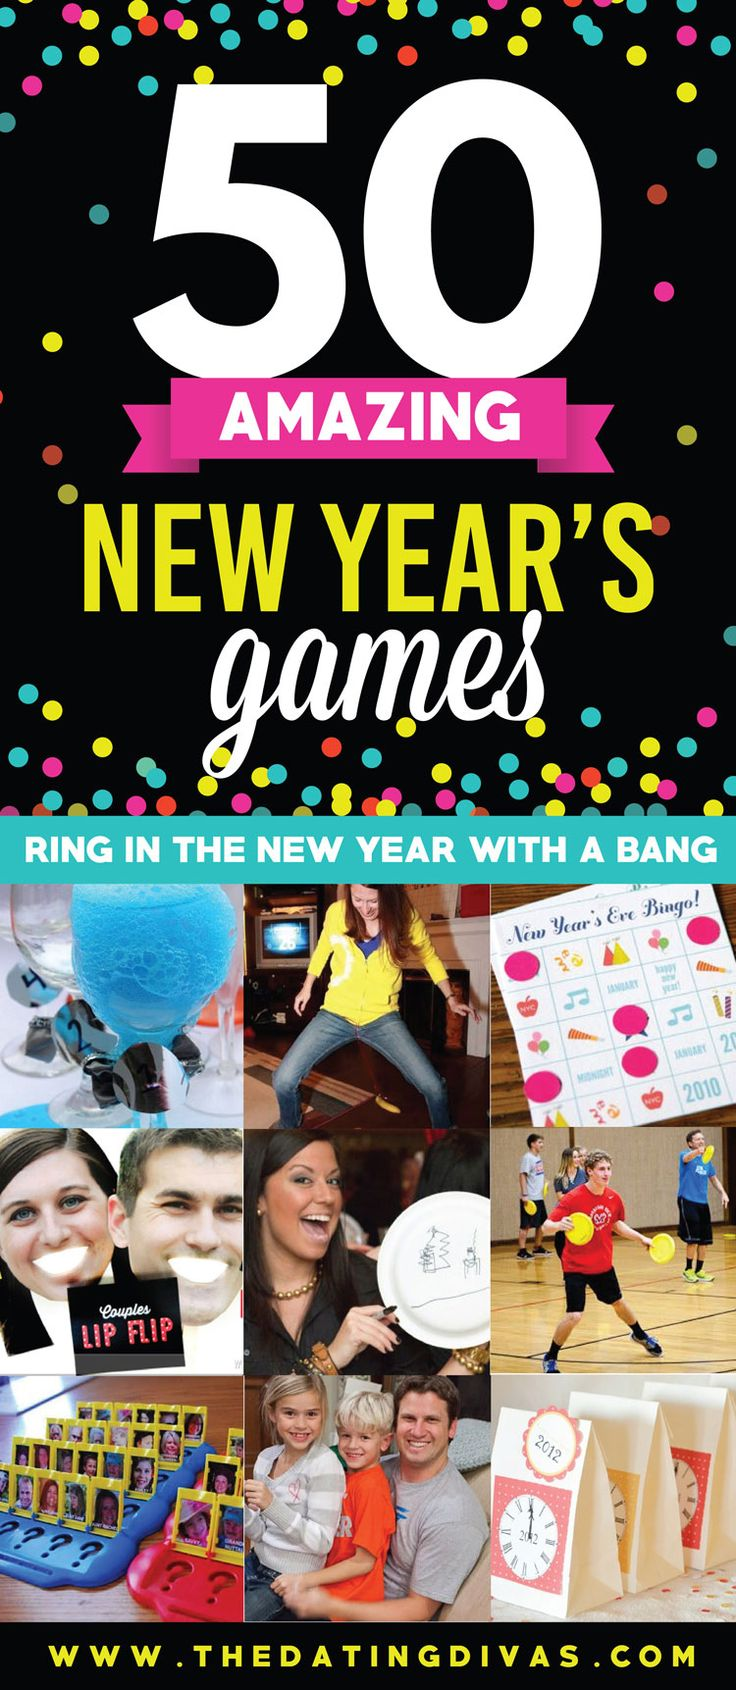 Can't wait to use these awesome party games for my New Year's Celebration! www.TheDatingDivas.com